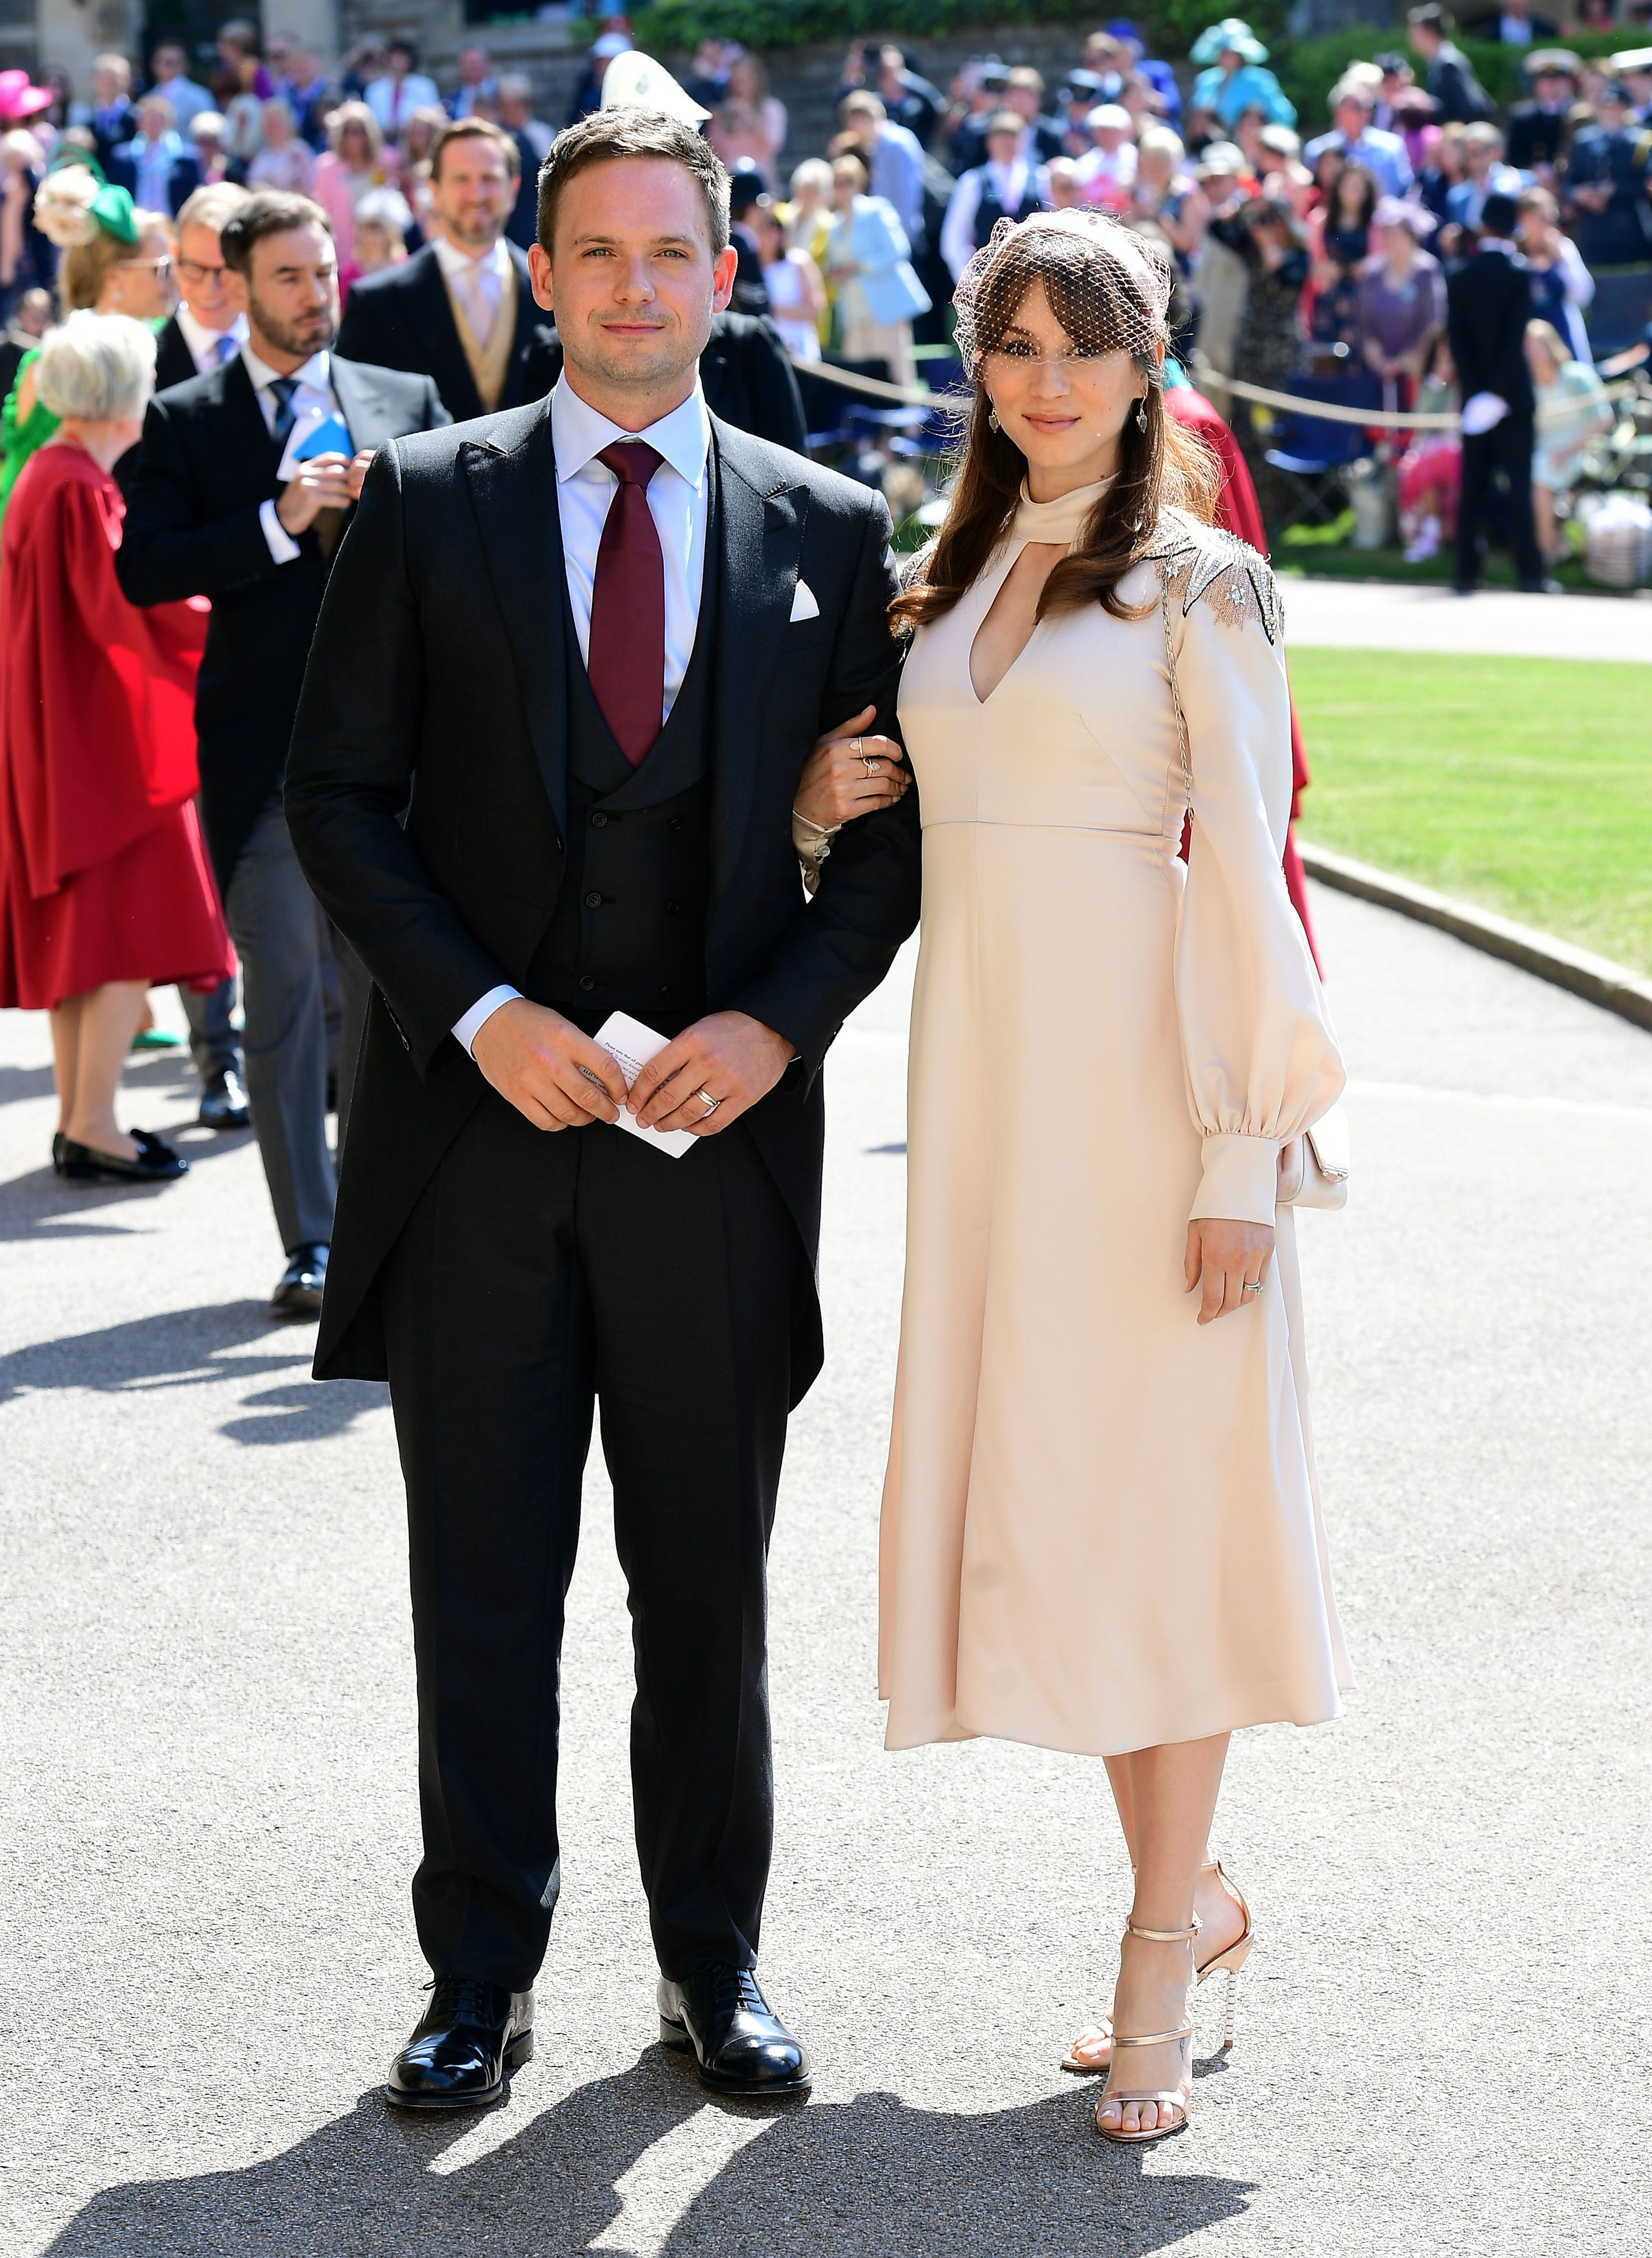 The five best dressed royal wedding guests - and how to shop their looks foto